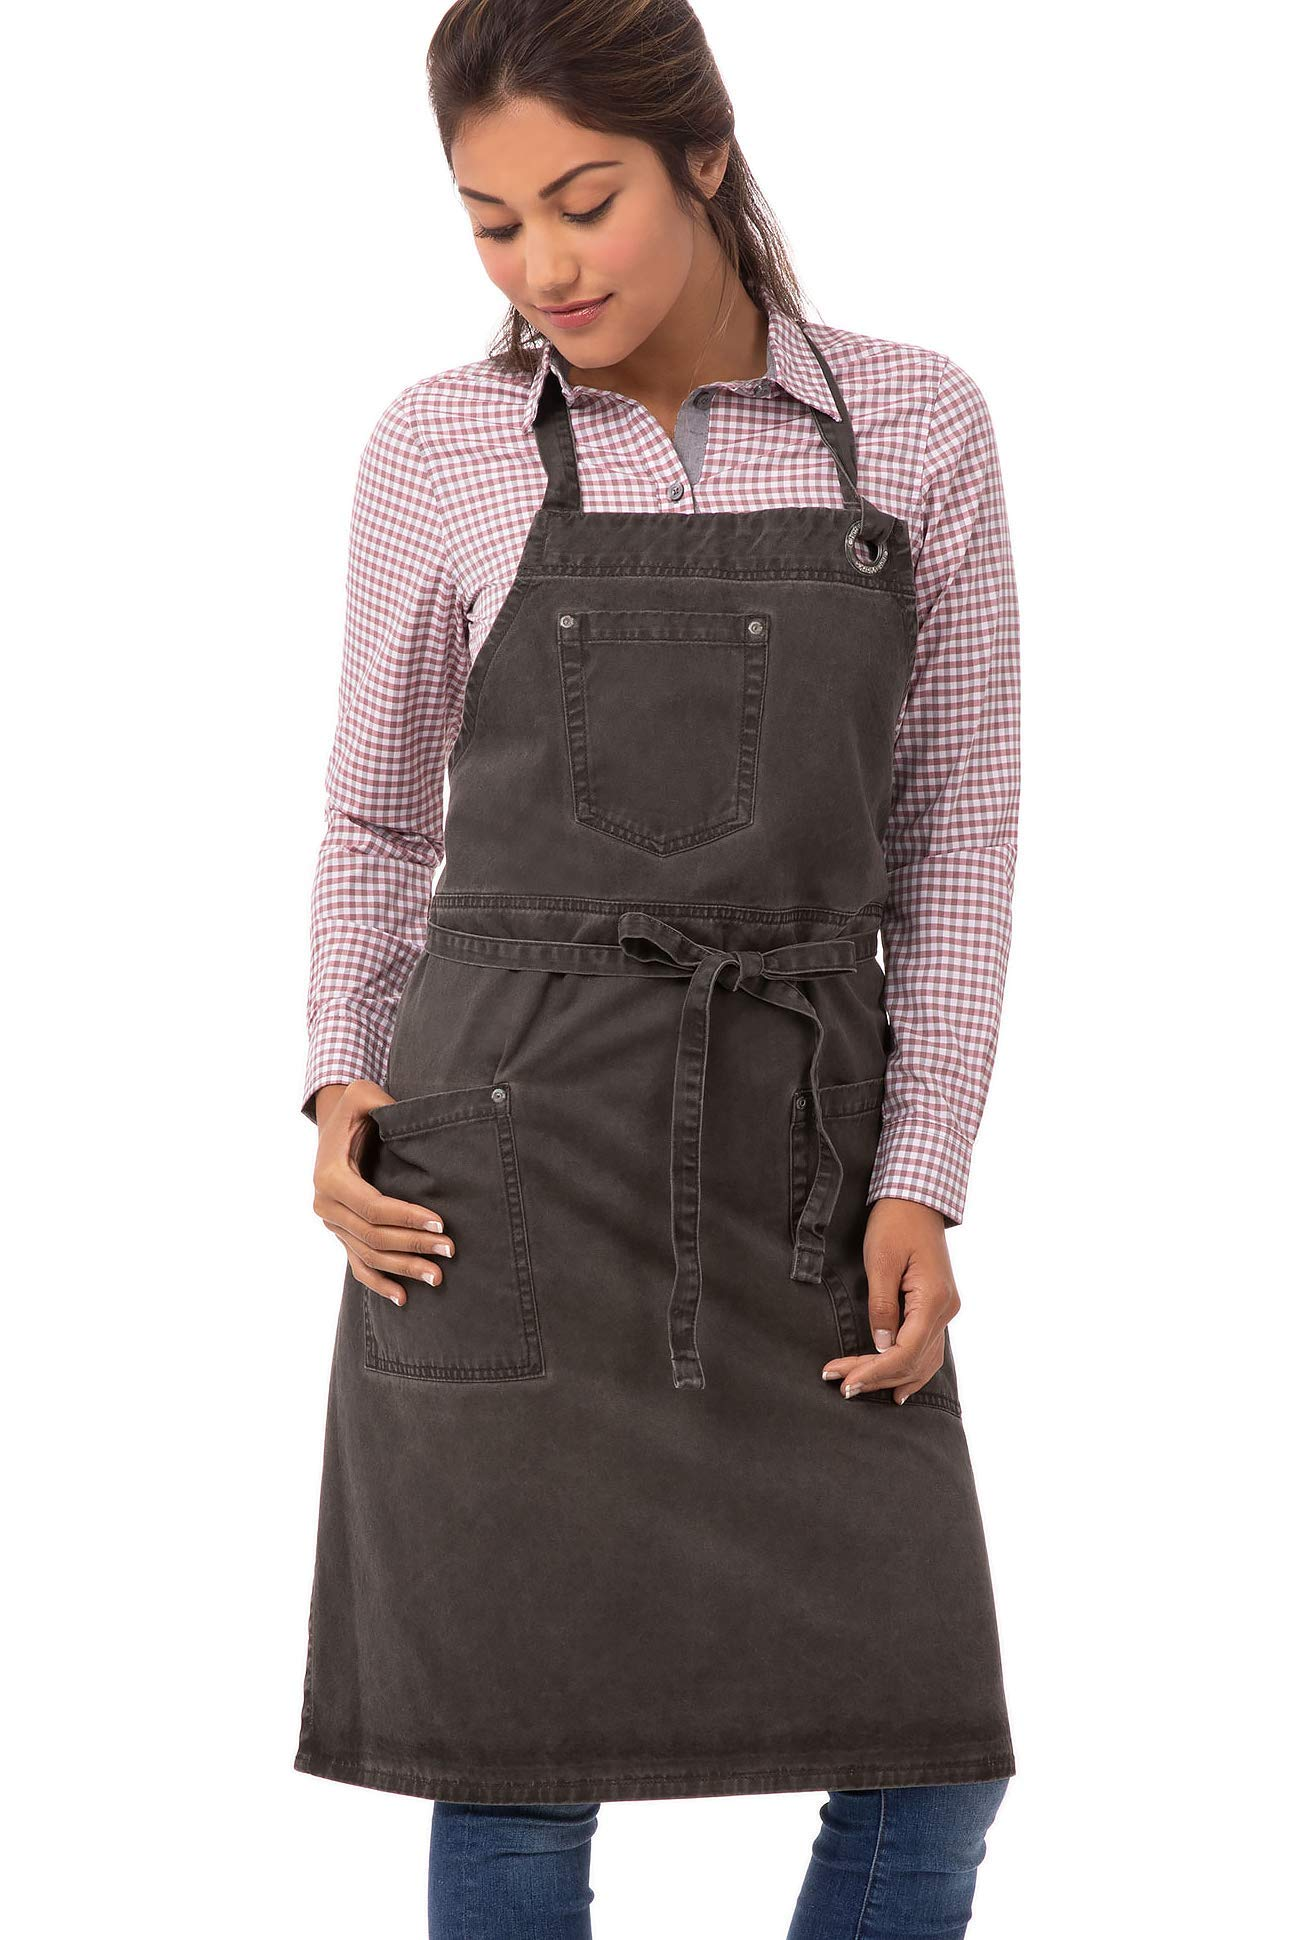 Chef Works Unisex Dorset Bib Apron, Pewter, One Size by Chef Works